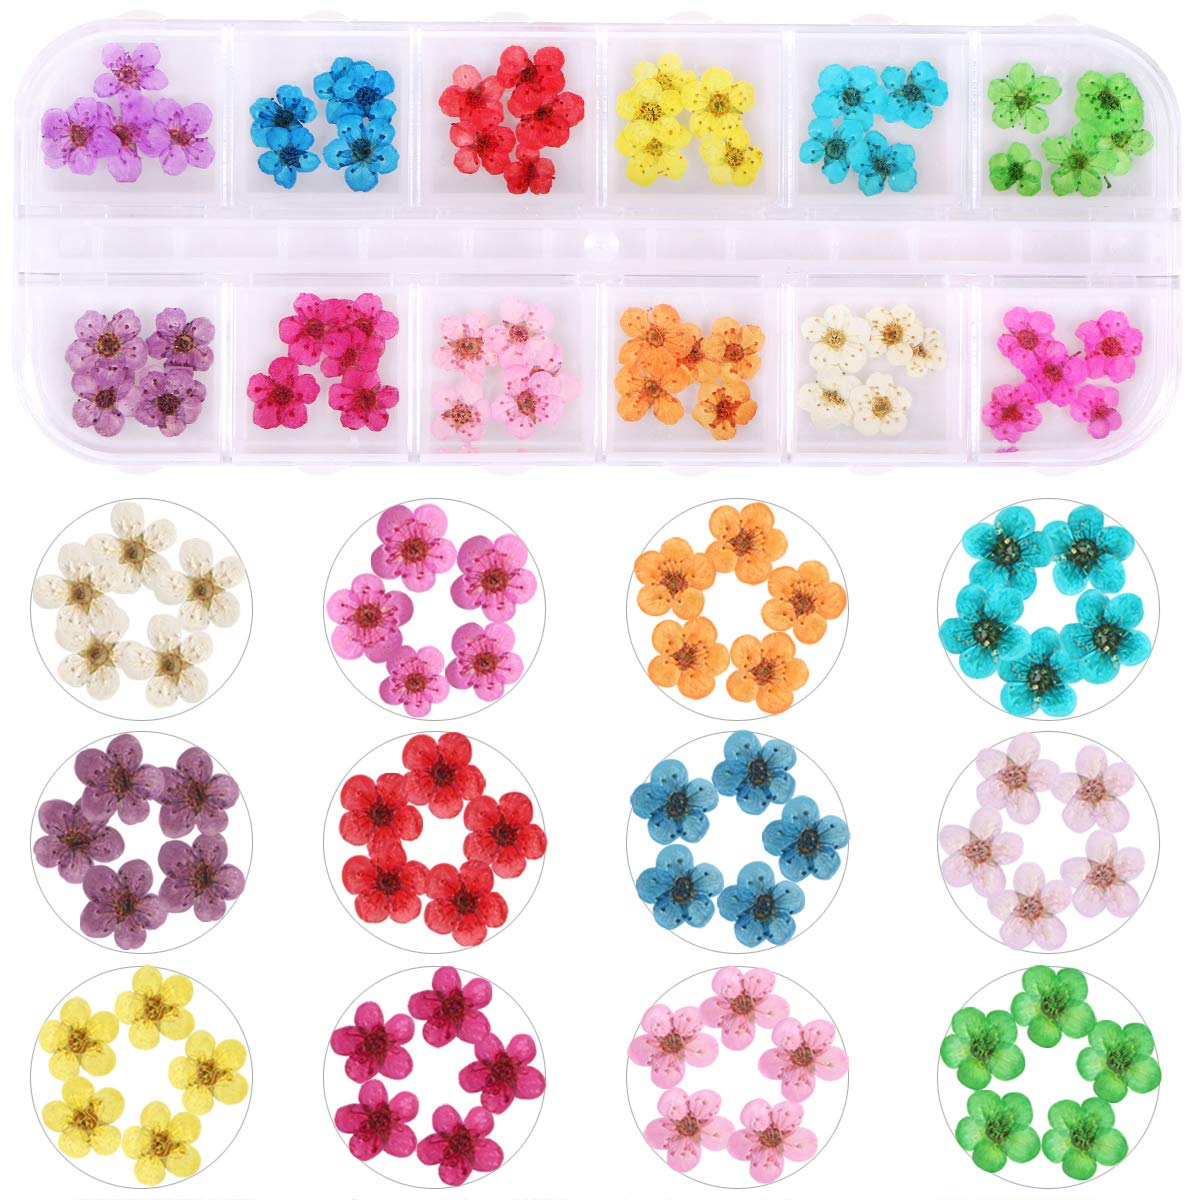 Choice 1 New product type Box Dried Flowers for Nail Colors KISSBUTY Art 12 Dry